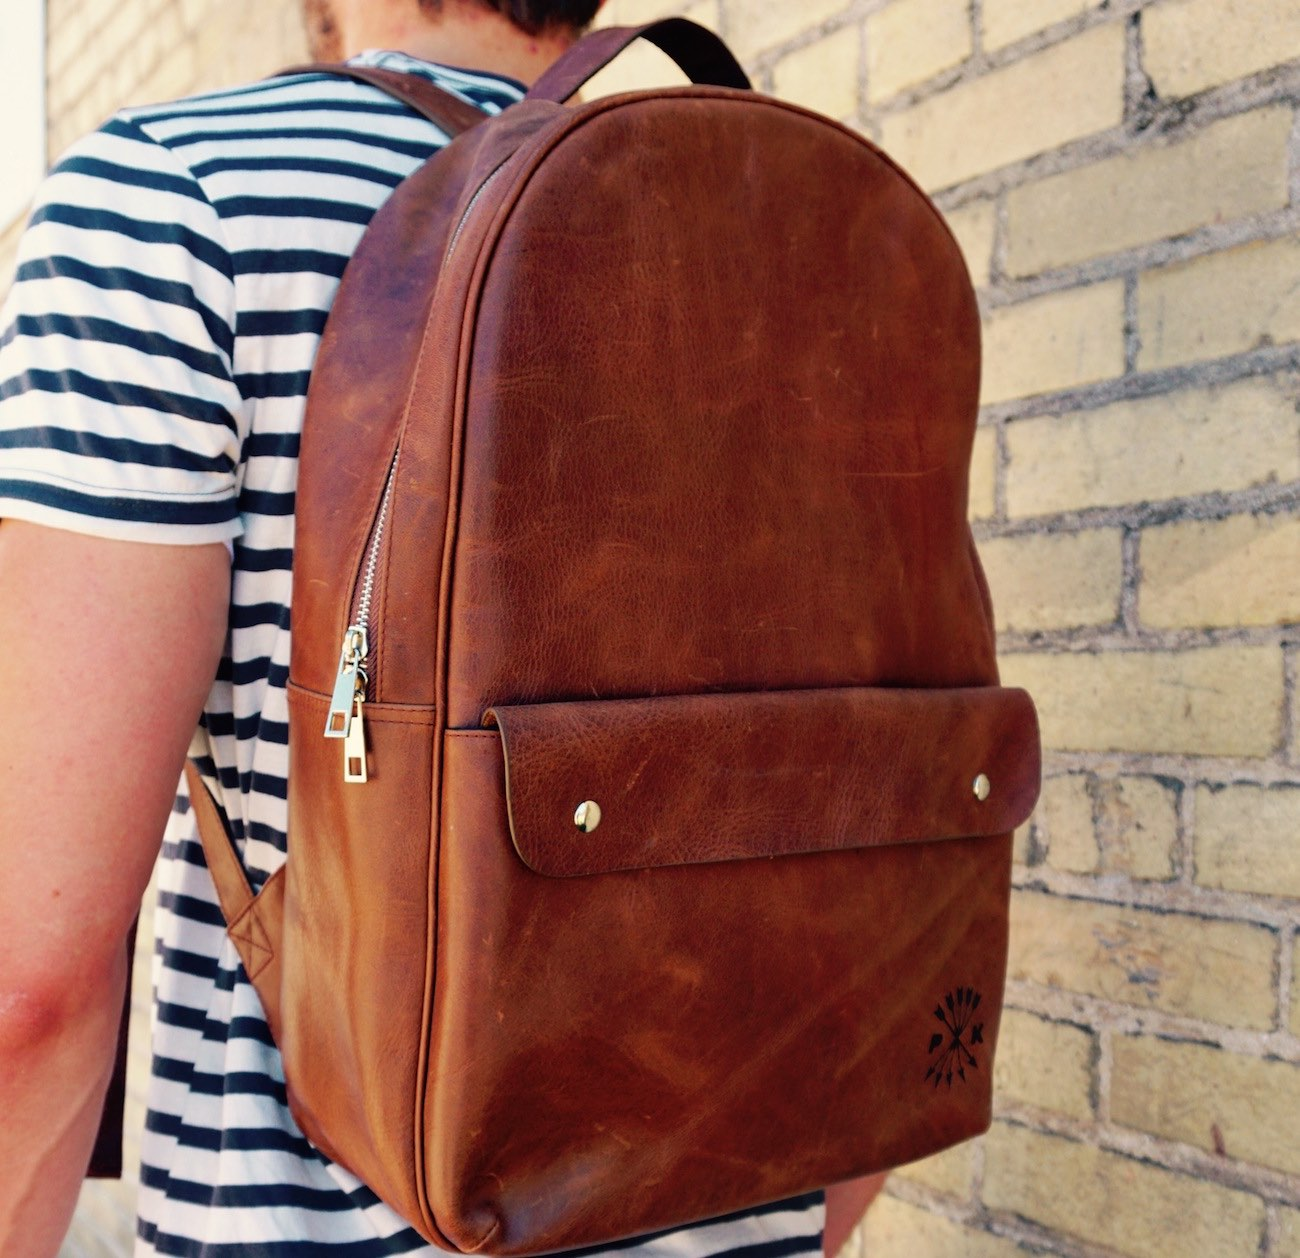 Minimalist Leather Backpack by Pask Goods